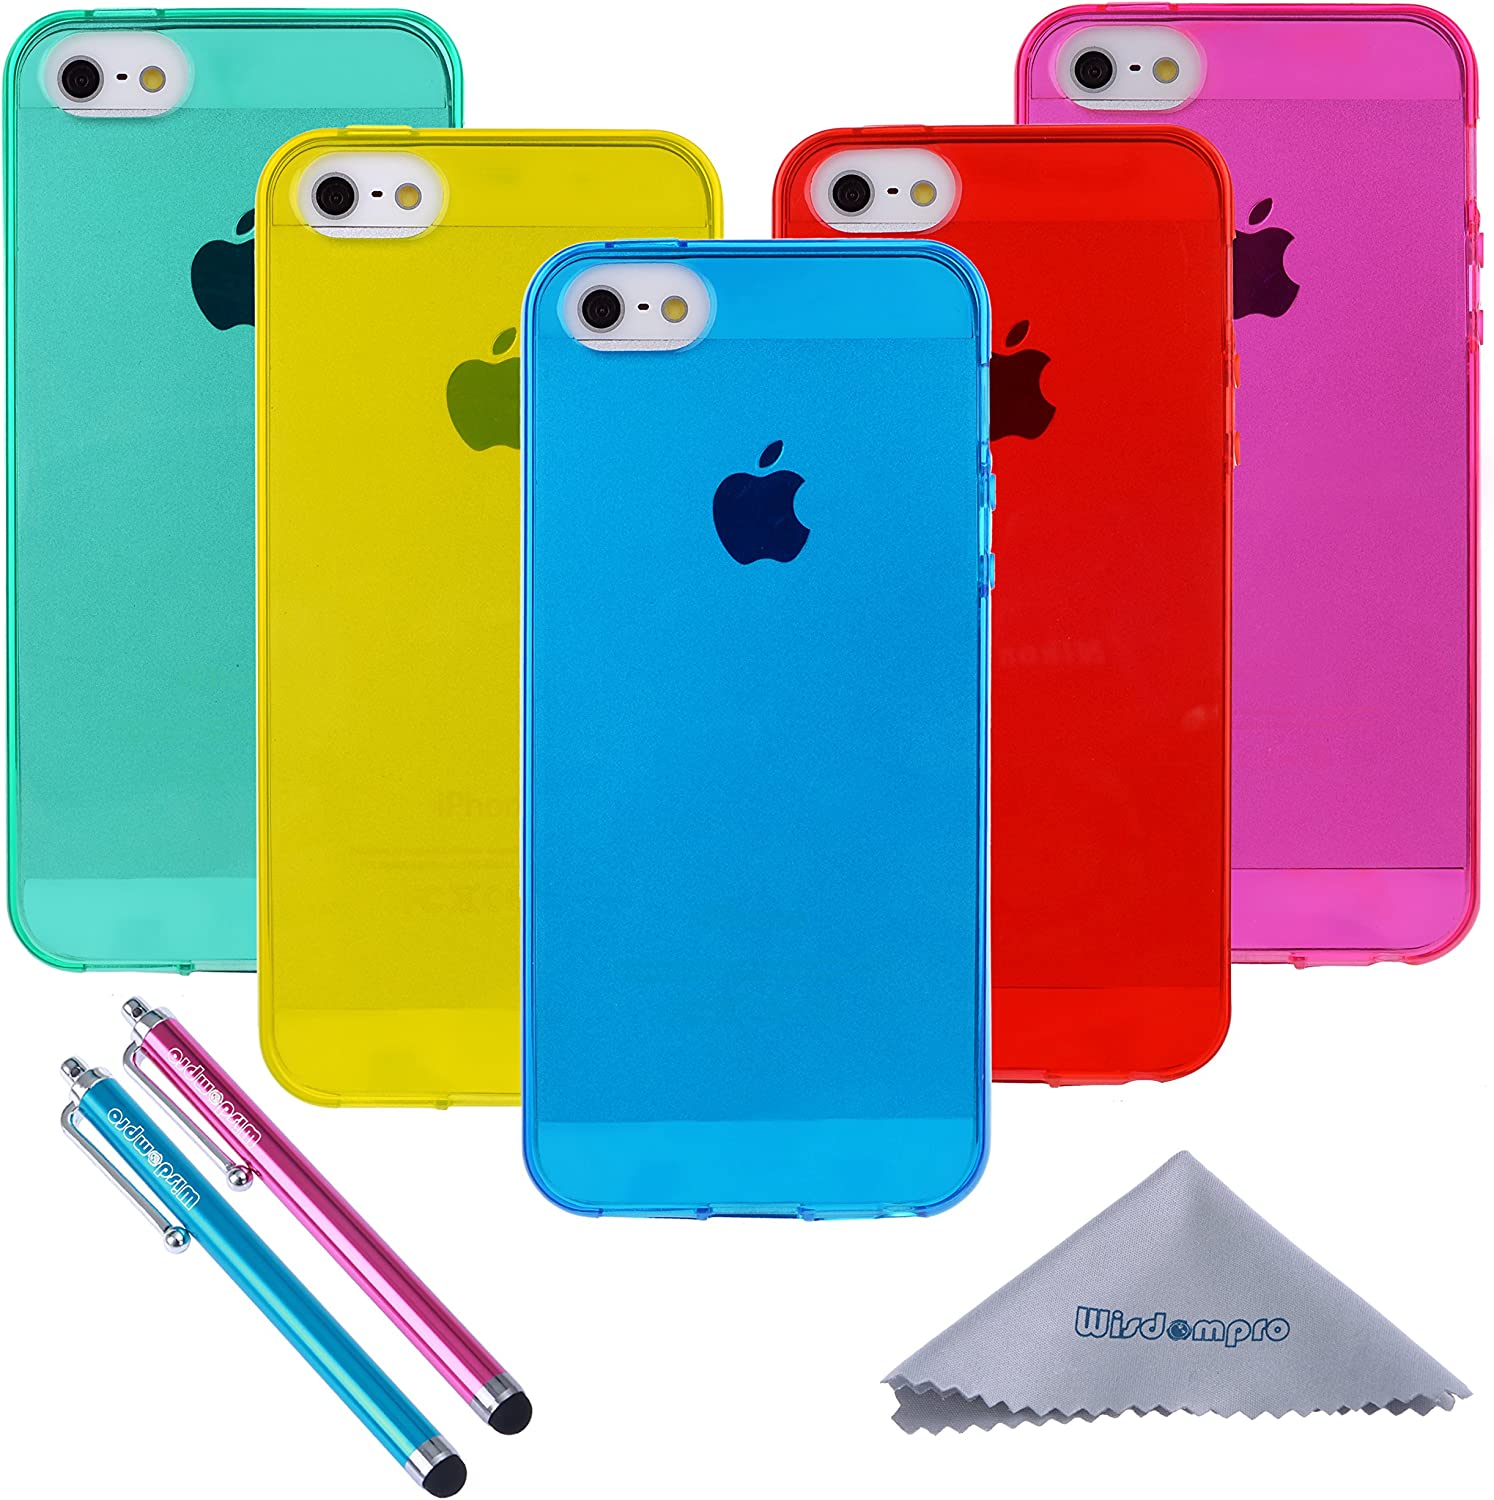 iPhone 5s Case, Wisdompro 5 Pack Bundle of Clear Jelly Colorful Soft TPU GEL Protective Case Cover for Apple iPhone 5, iPhone 5s & iPhone SE 1st ...